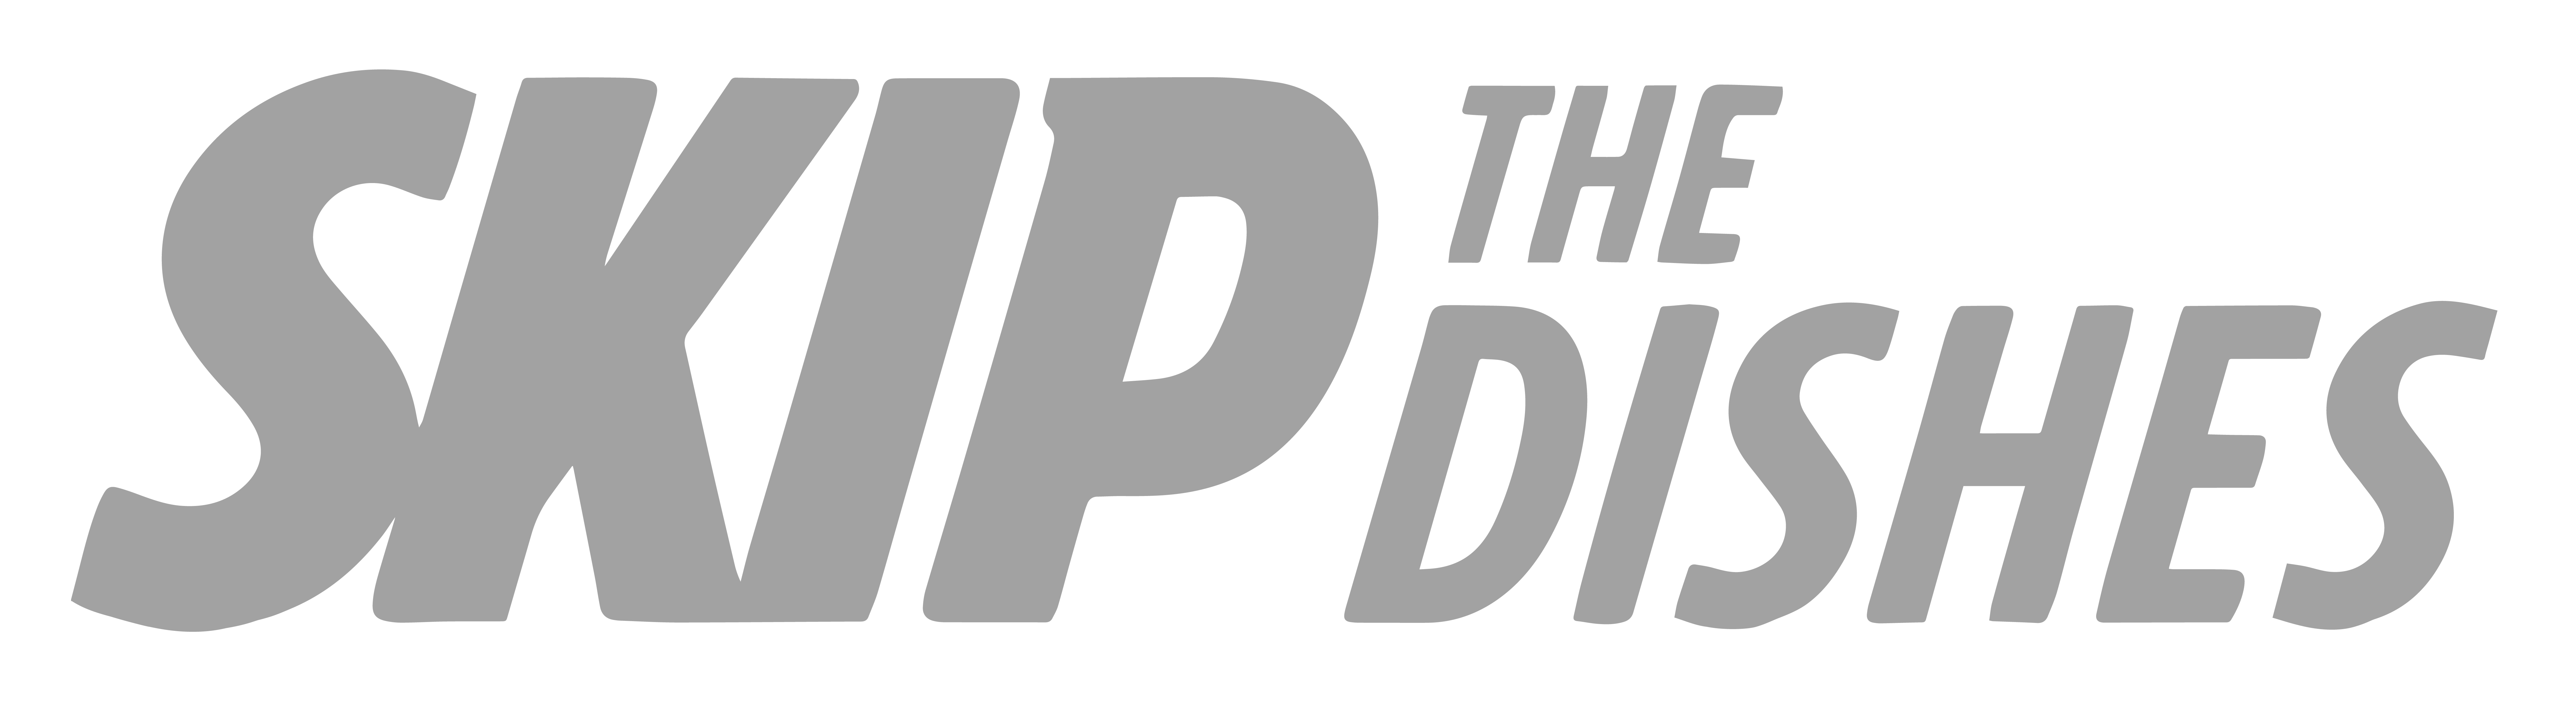 Skip the Dishes logo in grey